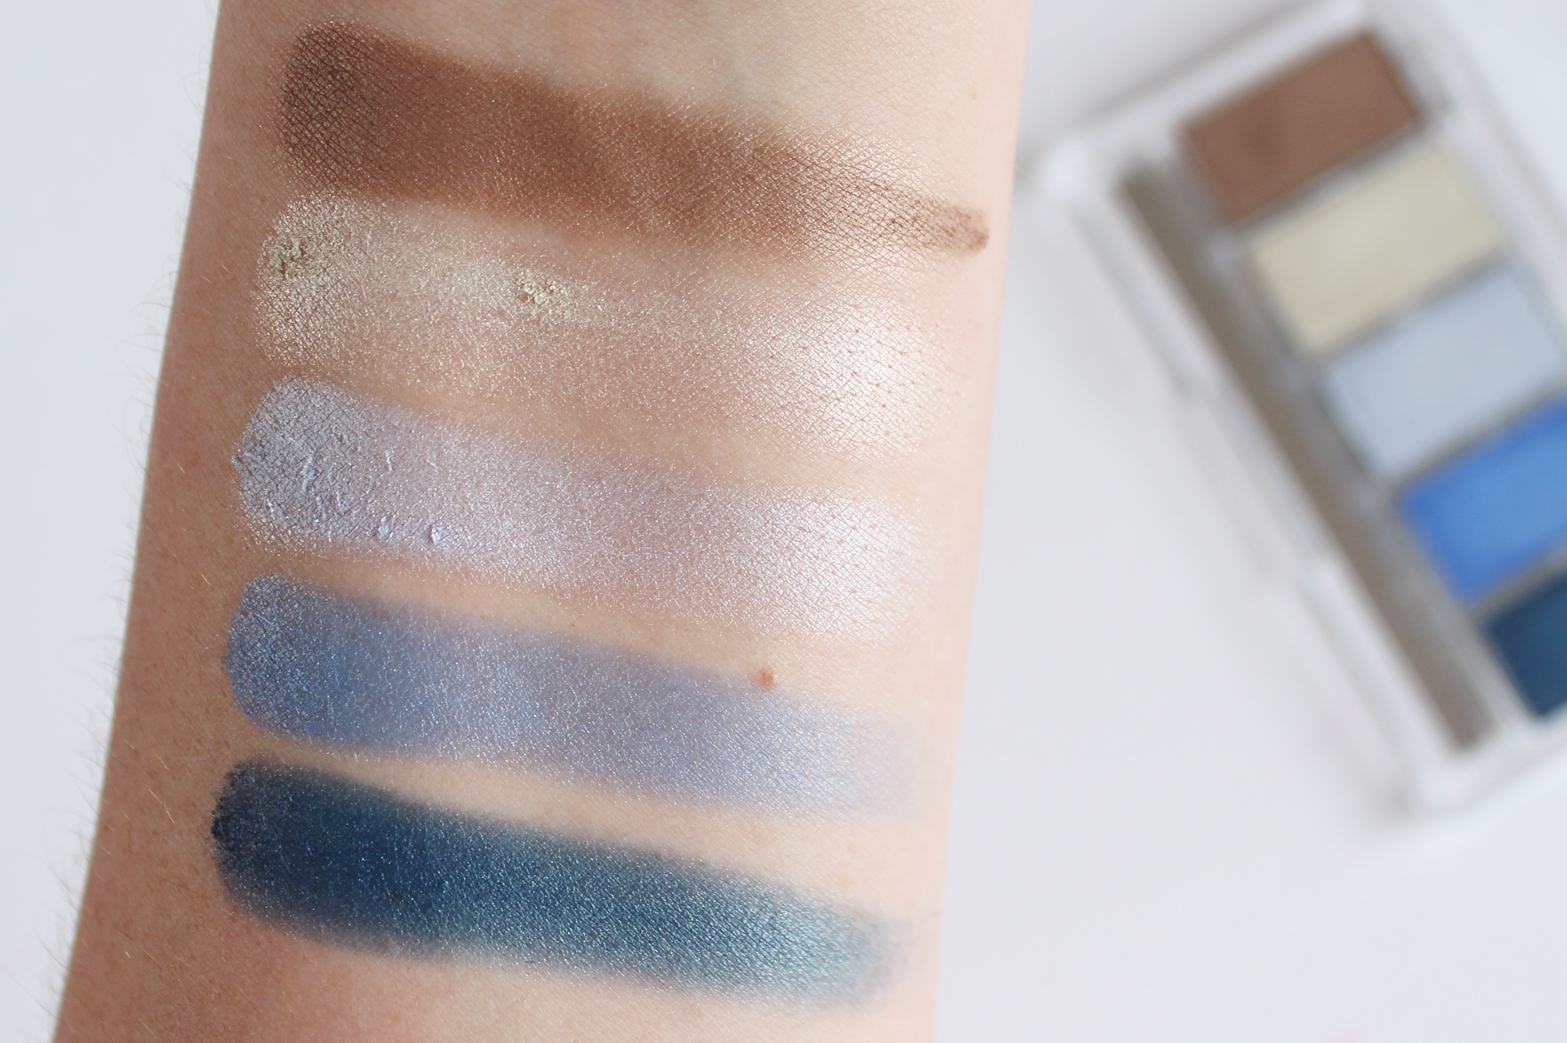 ESSENCE COSMETICS | Nauti Girl Trend Collection - Review + Swatches - CassandraMyee